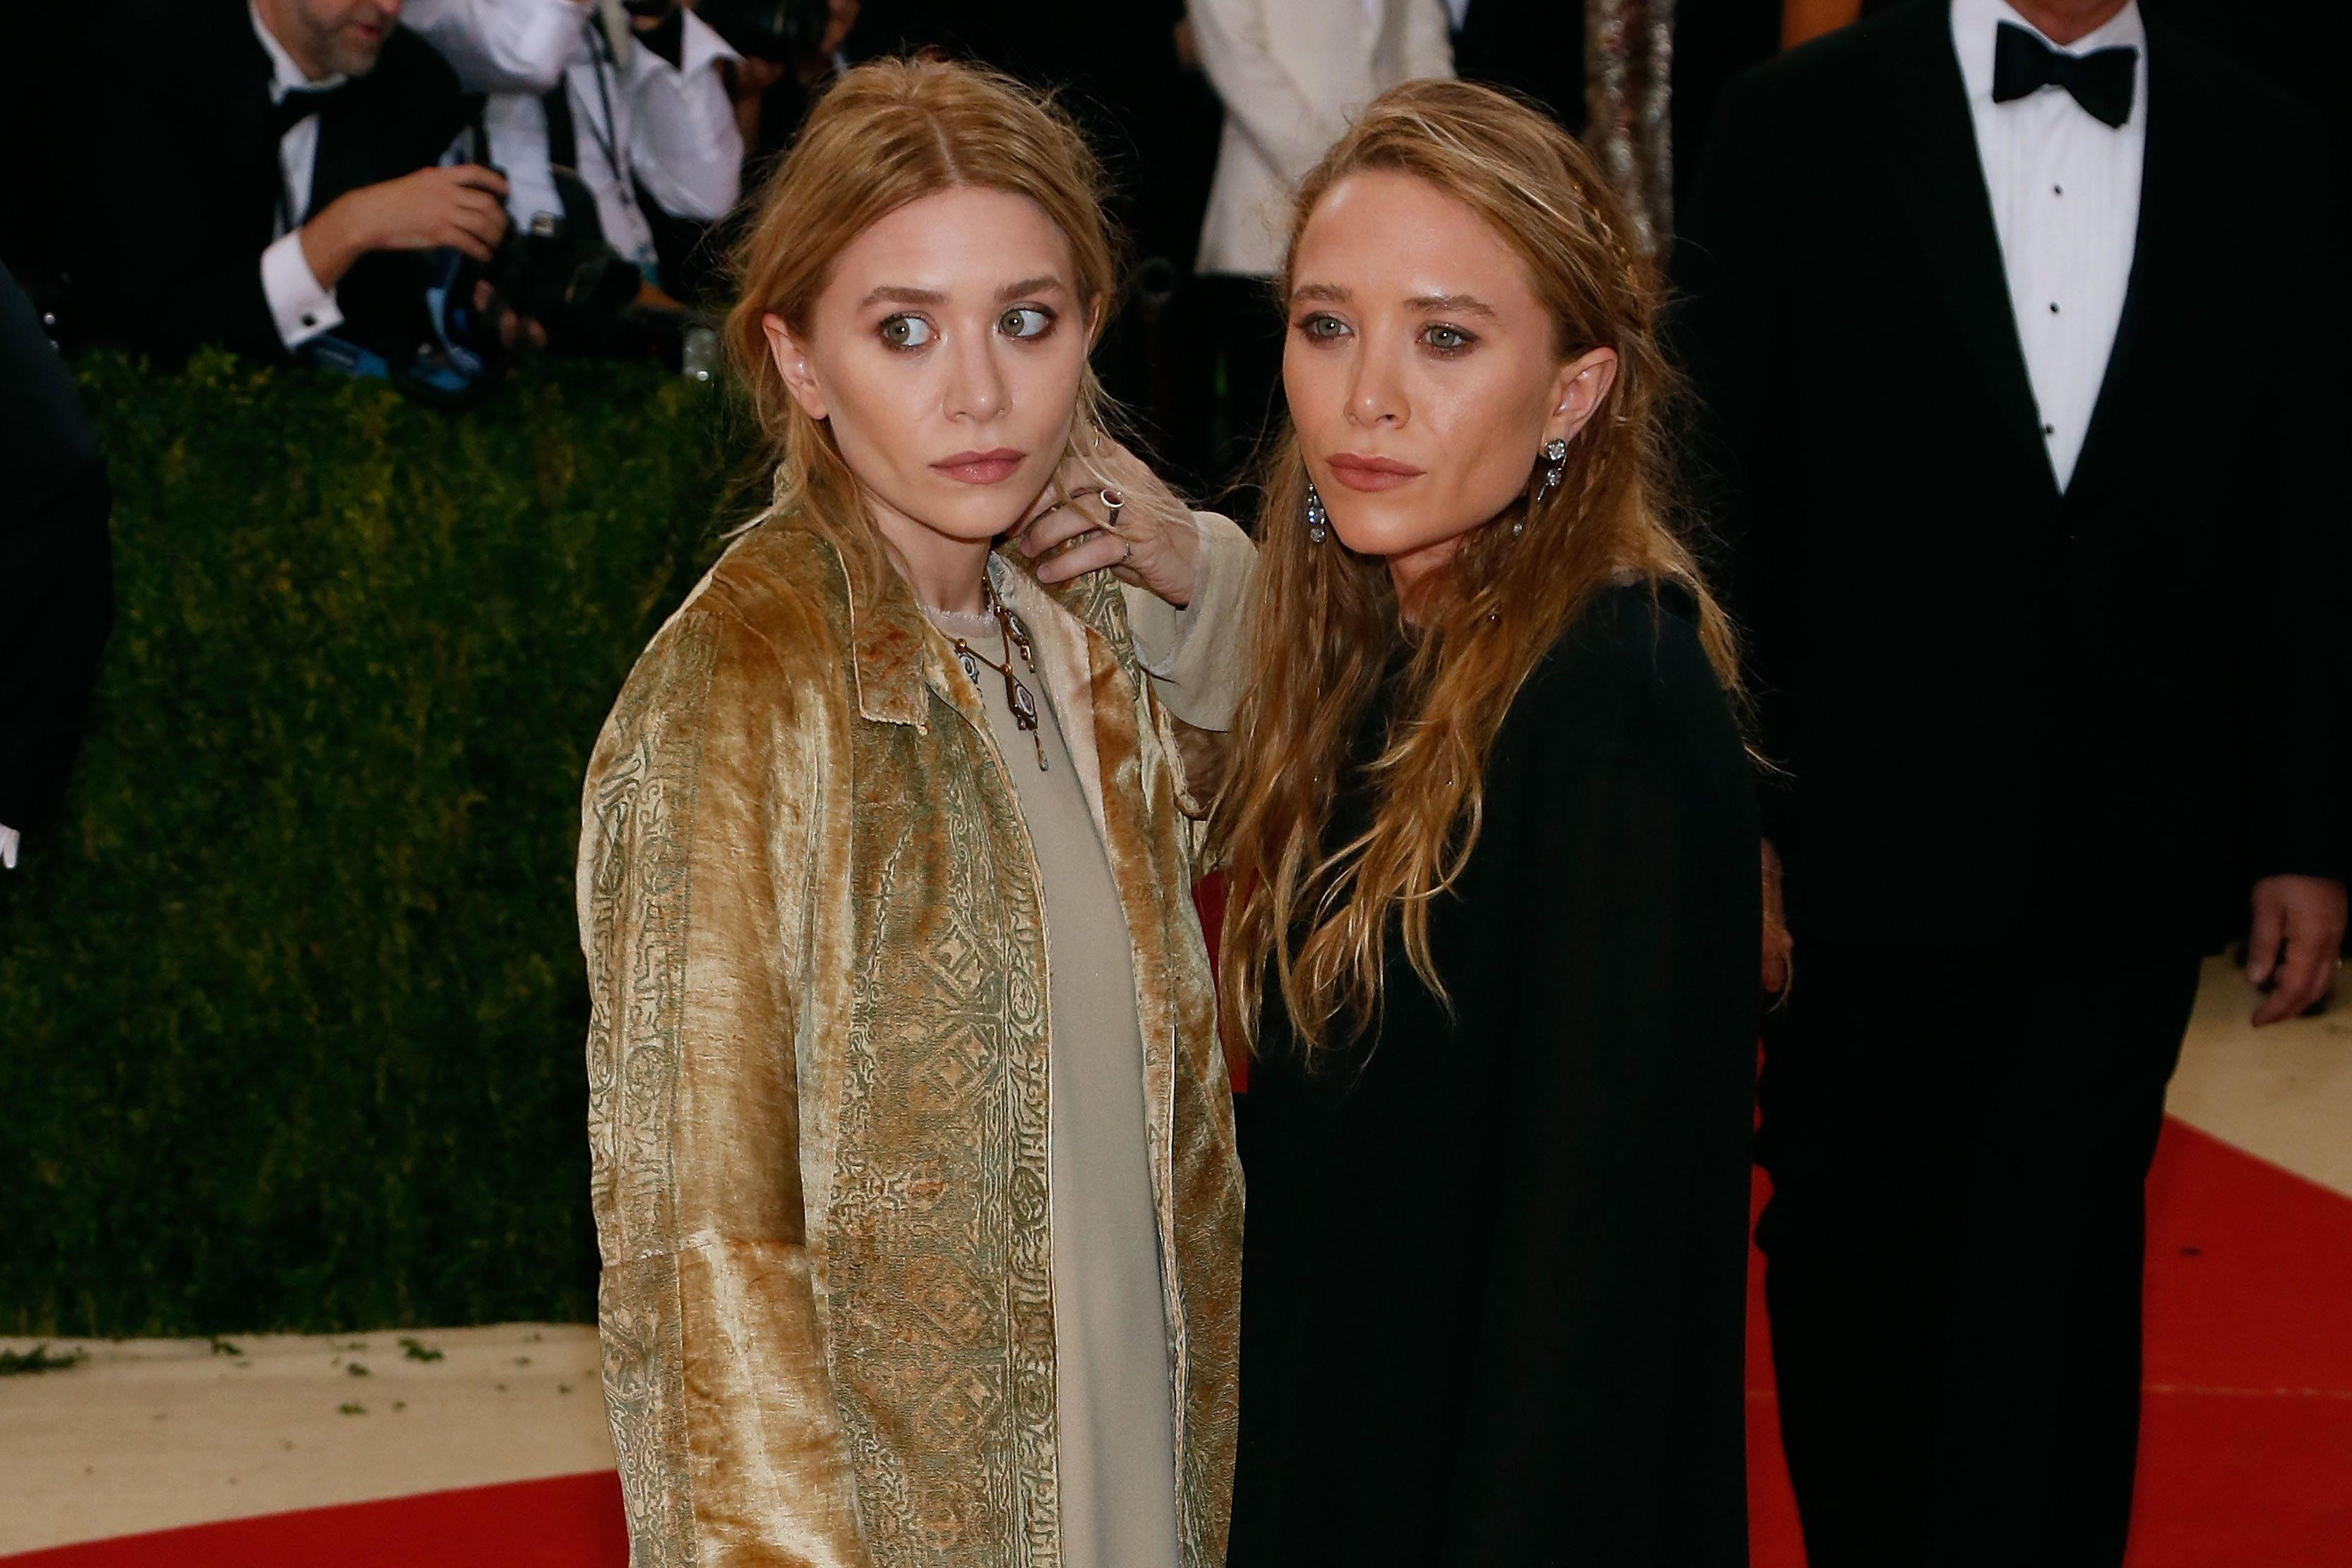 Communication on this topic: An Olsen Twin Sighting Is Like Seeing , an-olsen-twin-sighting-is-like-seeing/